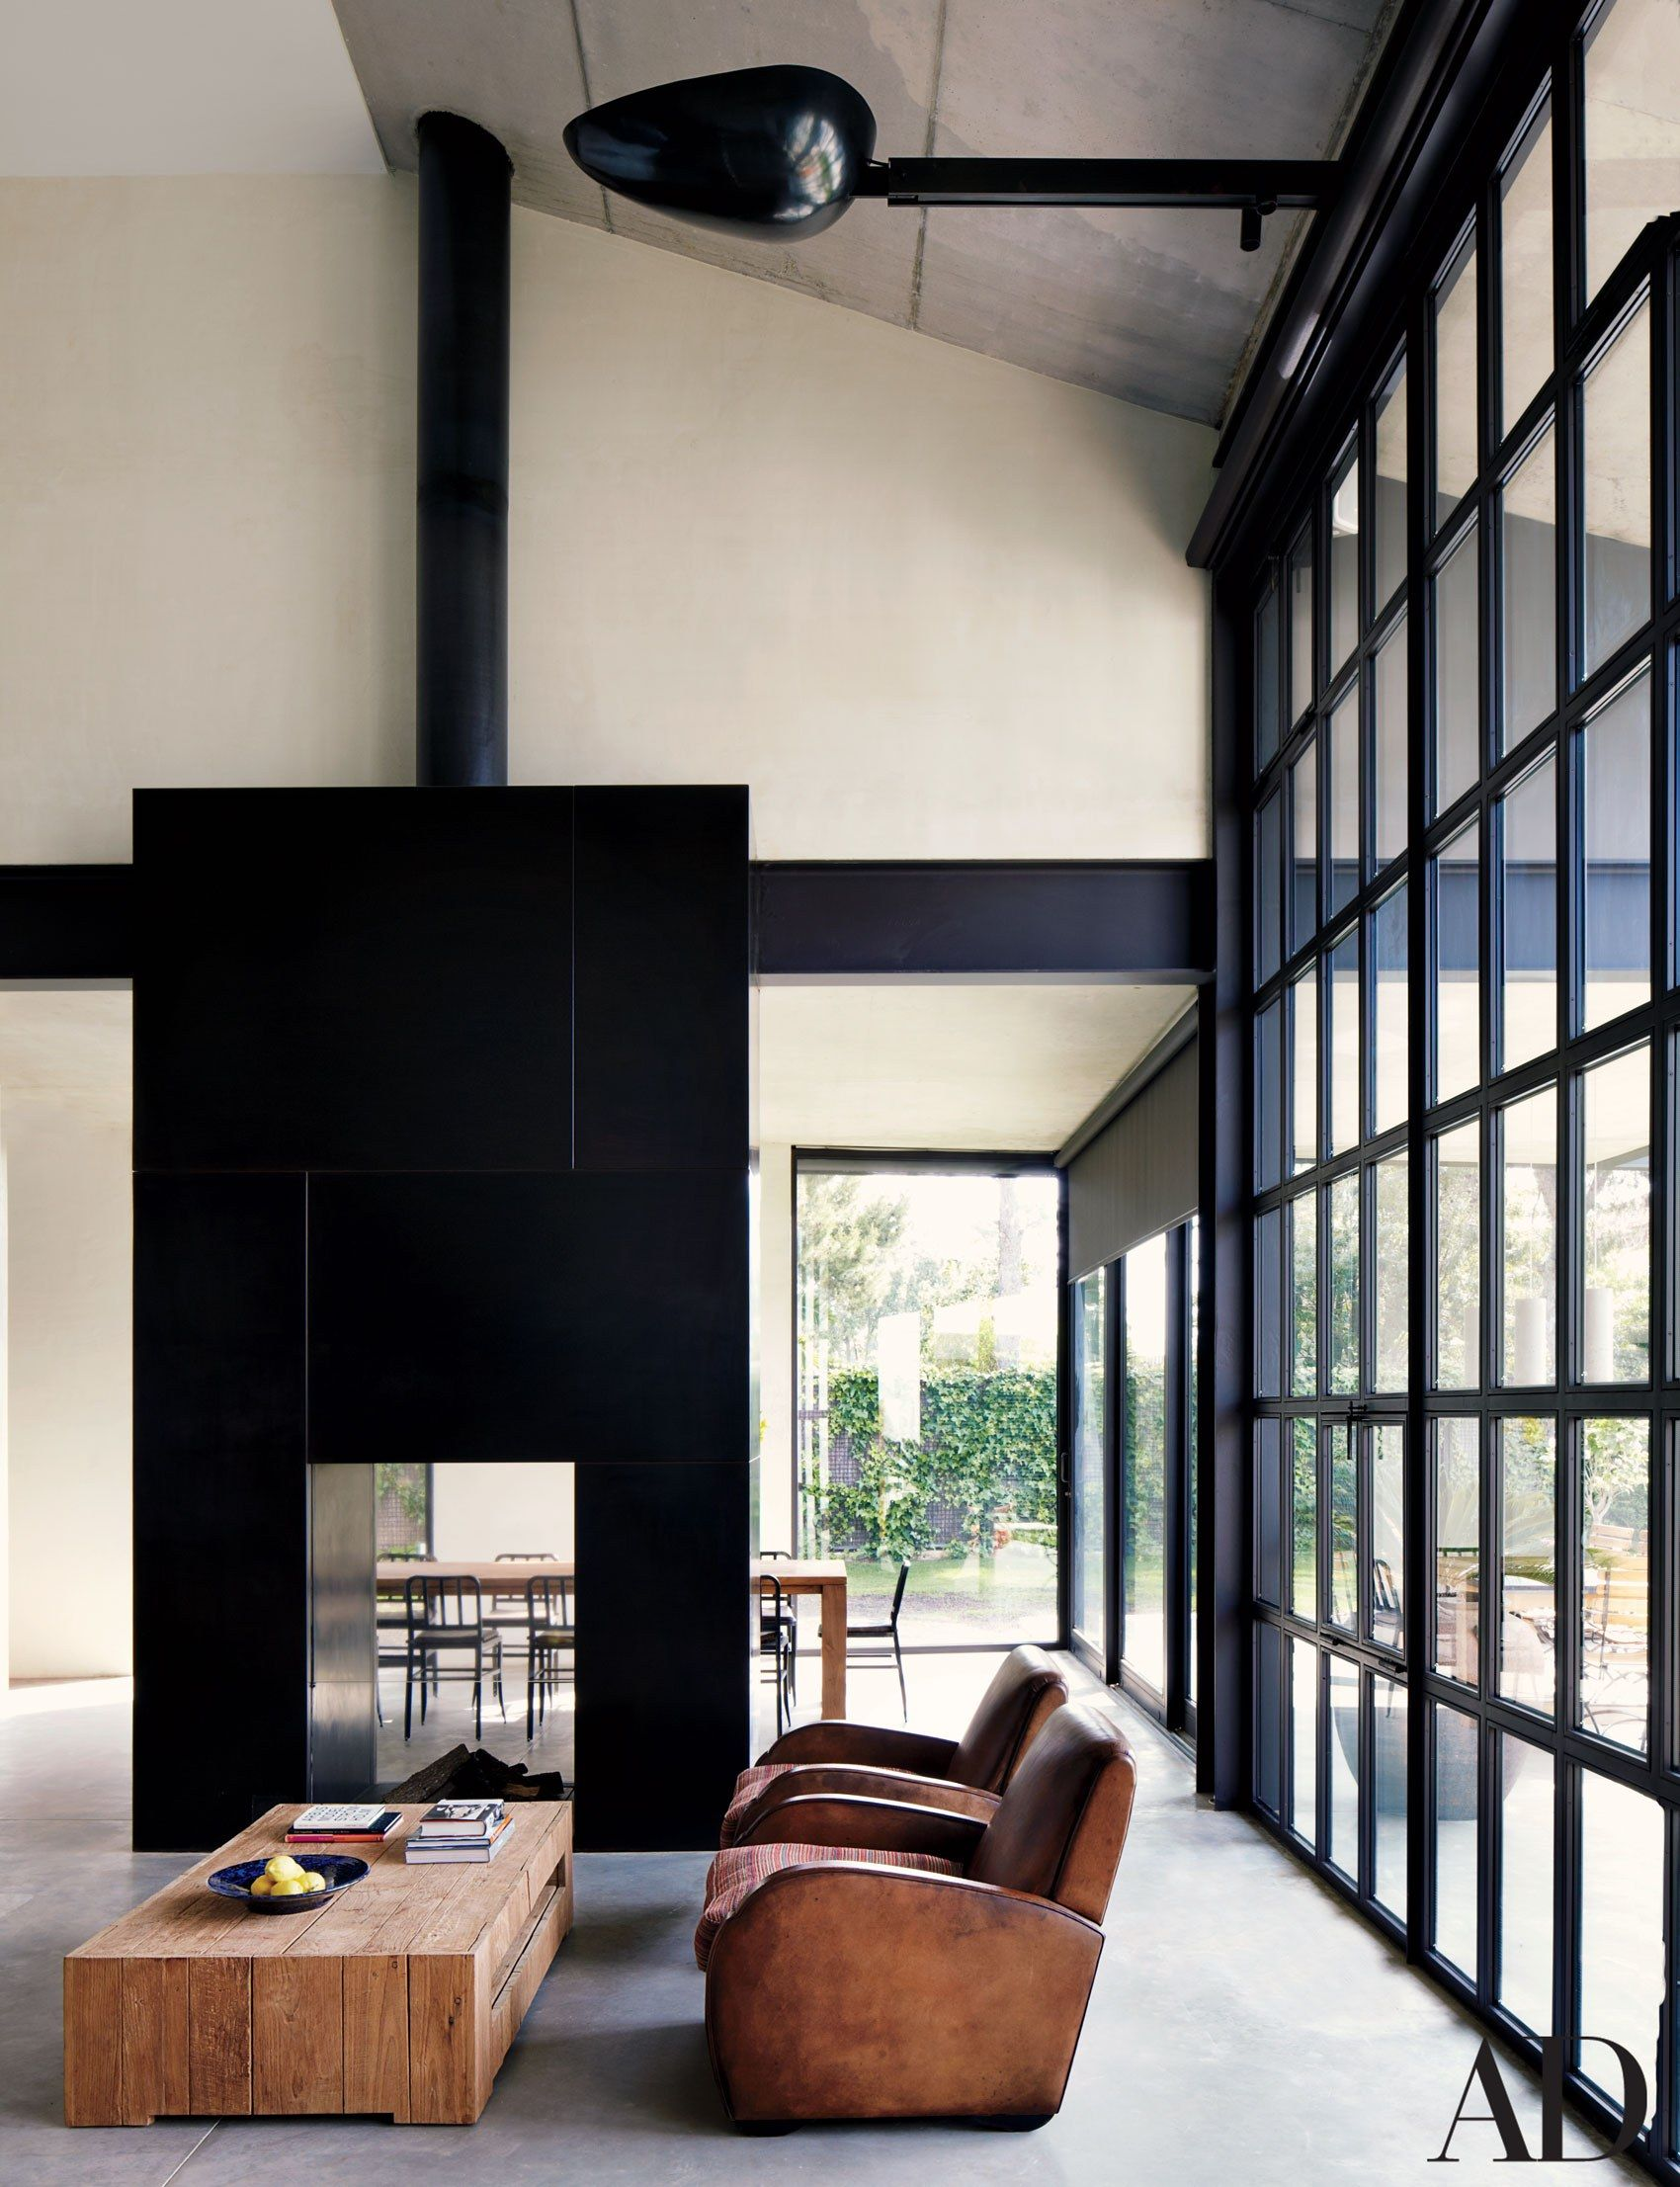 Interior Designers On Great Design For Every Style Interior